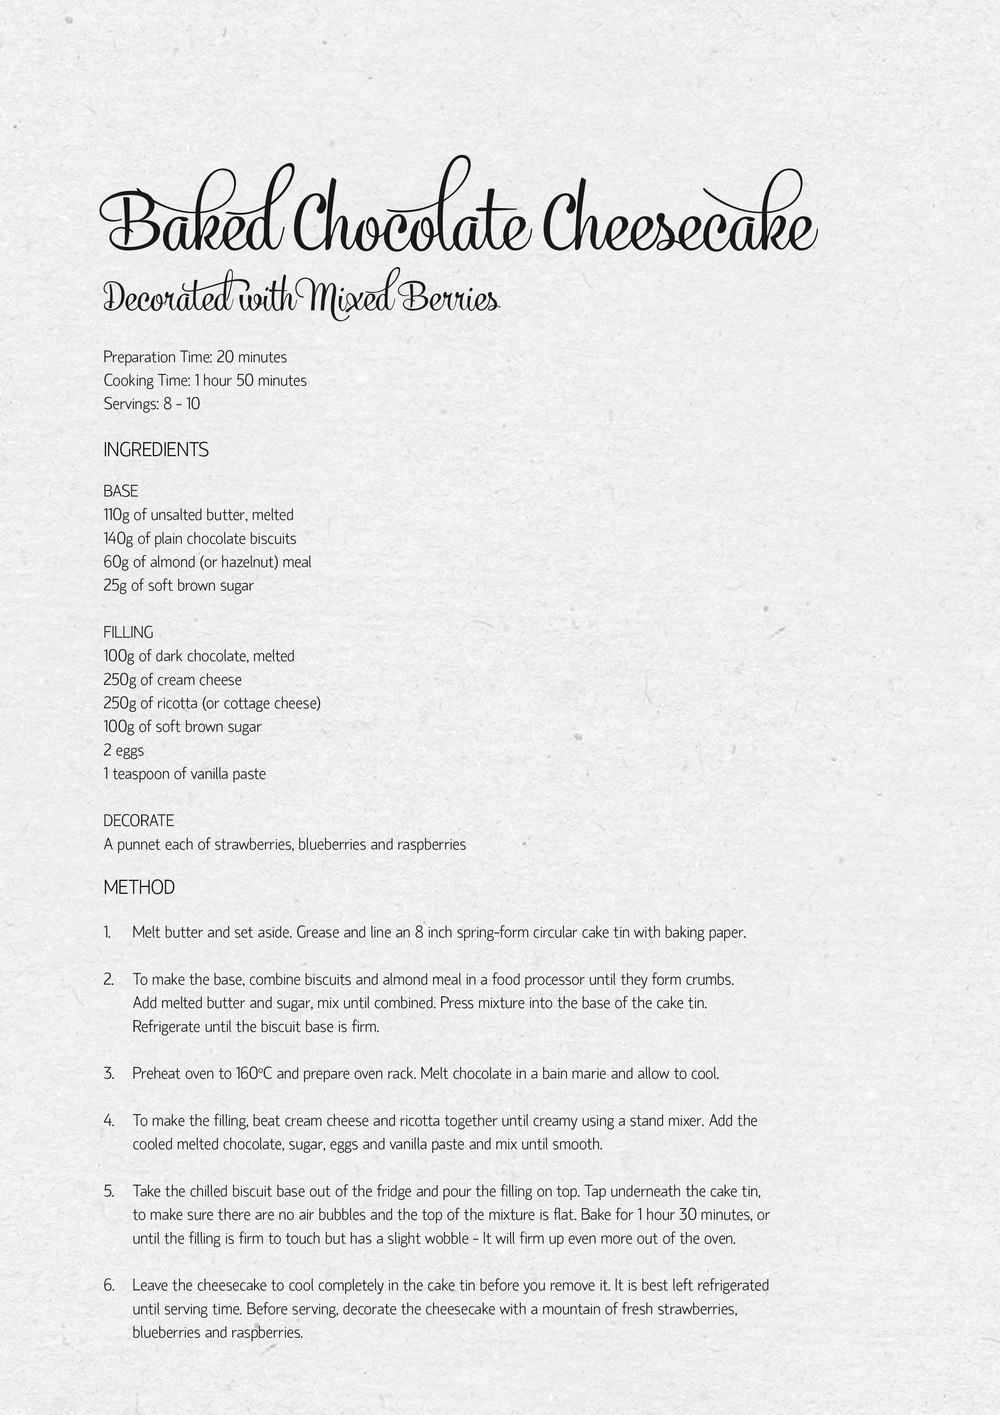 Recipe for my baked chocolate cheesecake